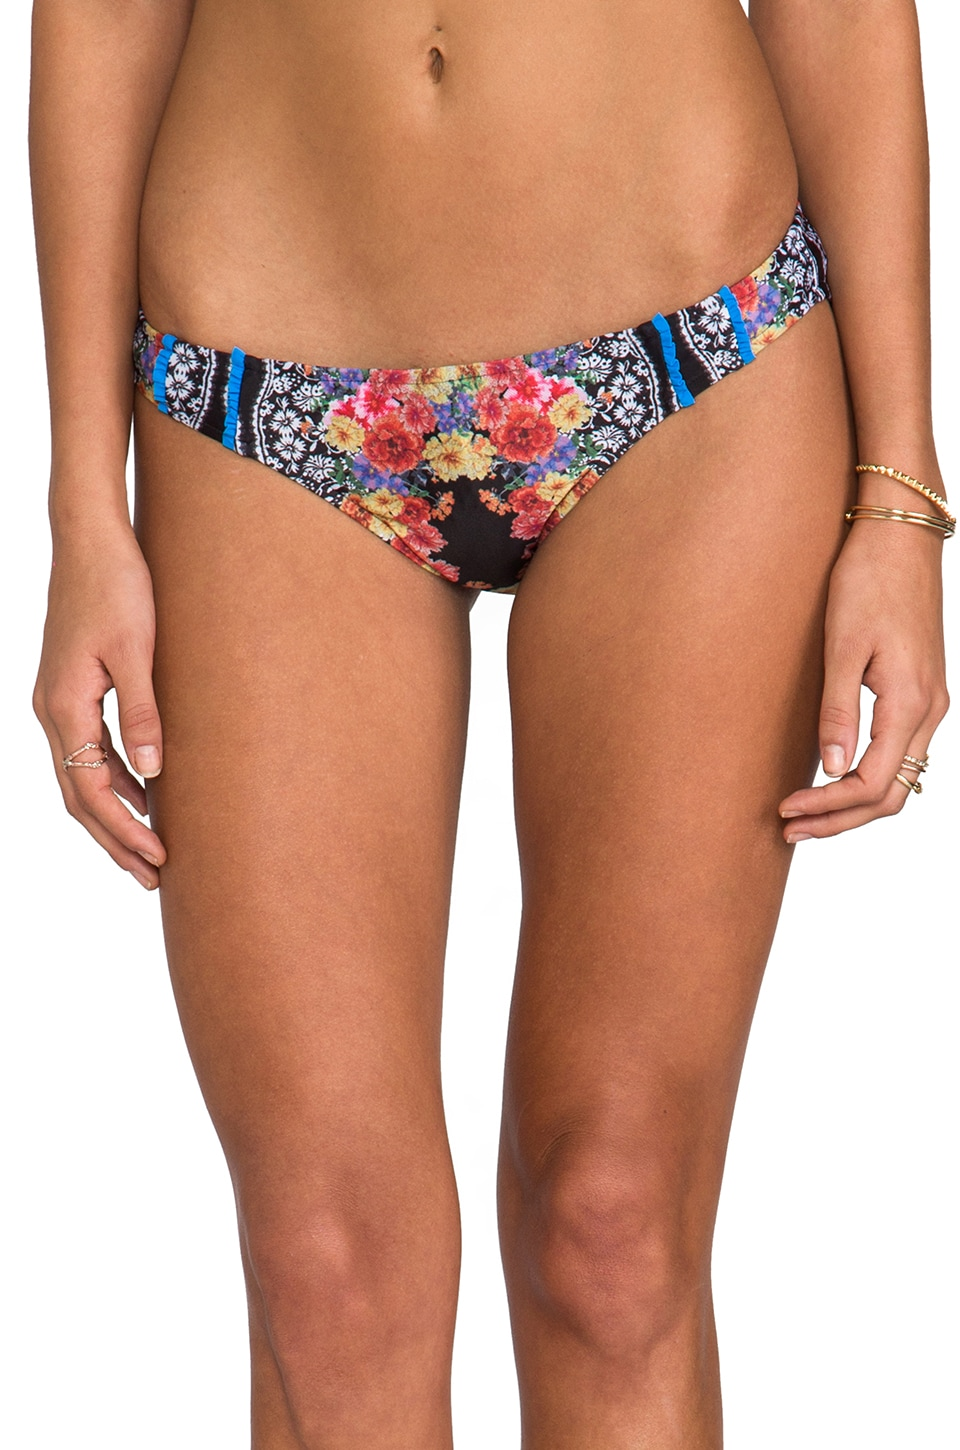 MINKPINK Lacey's Choice Bikini Bottoms in Multi